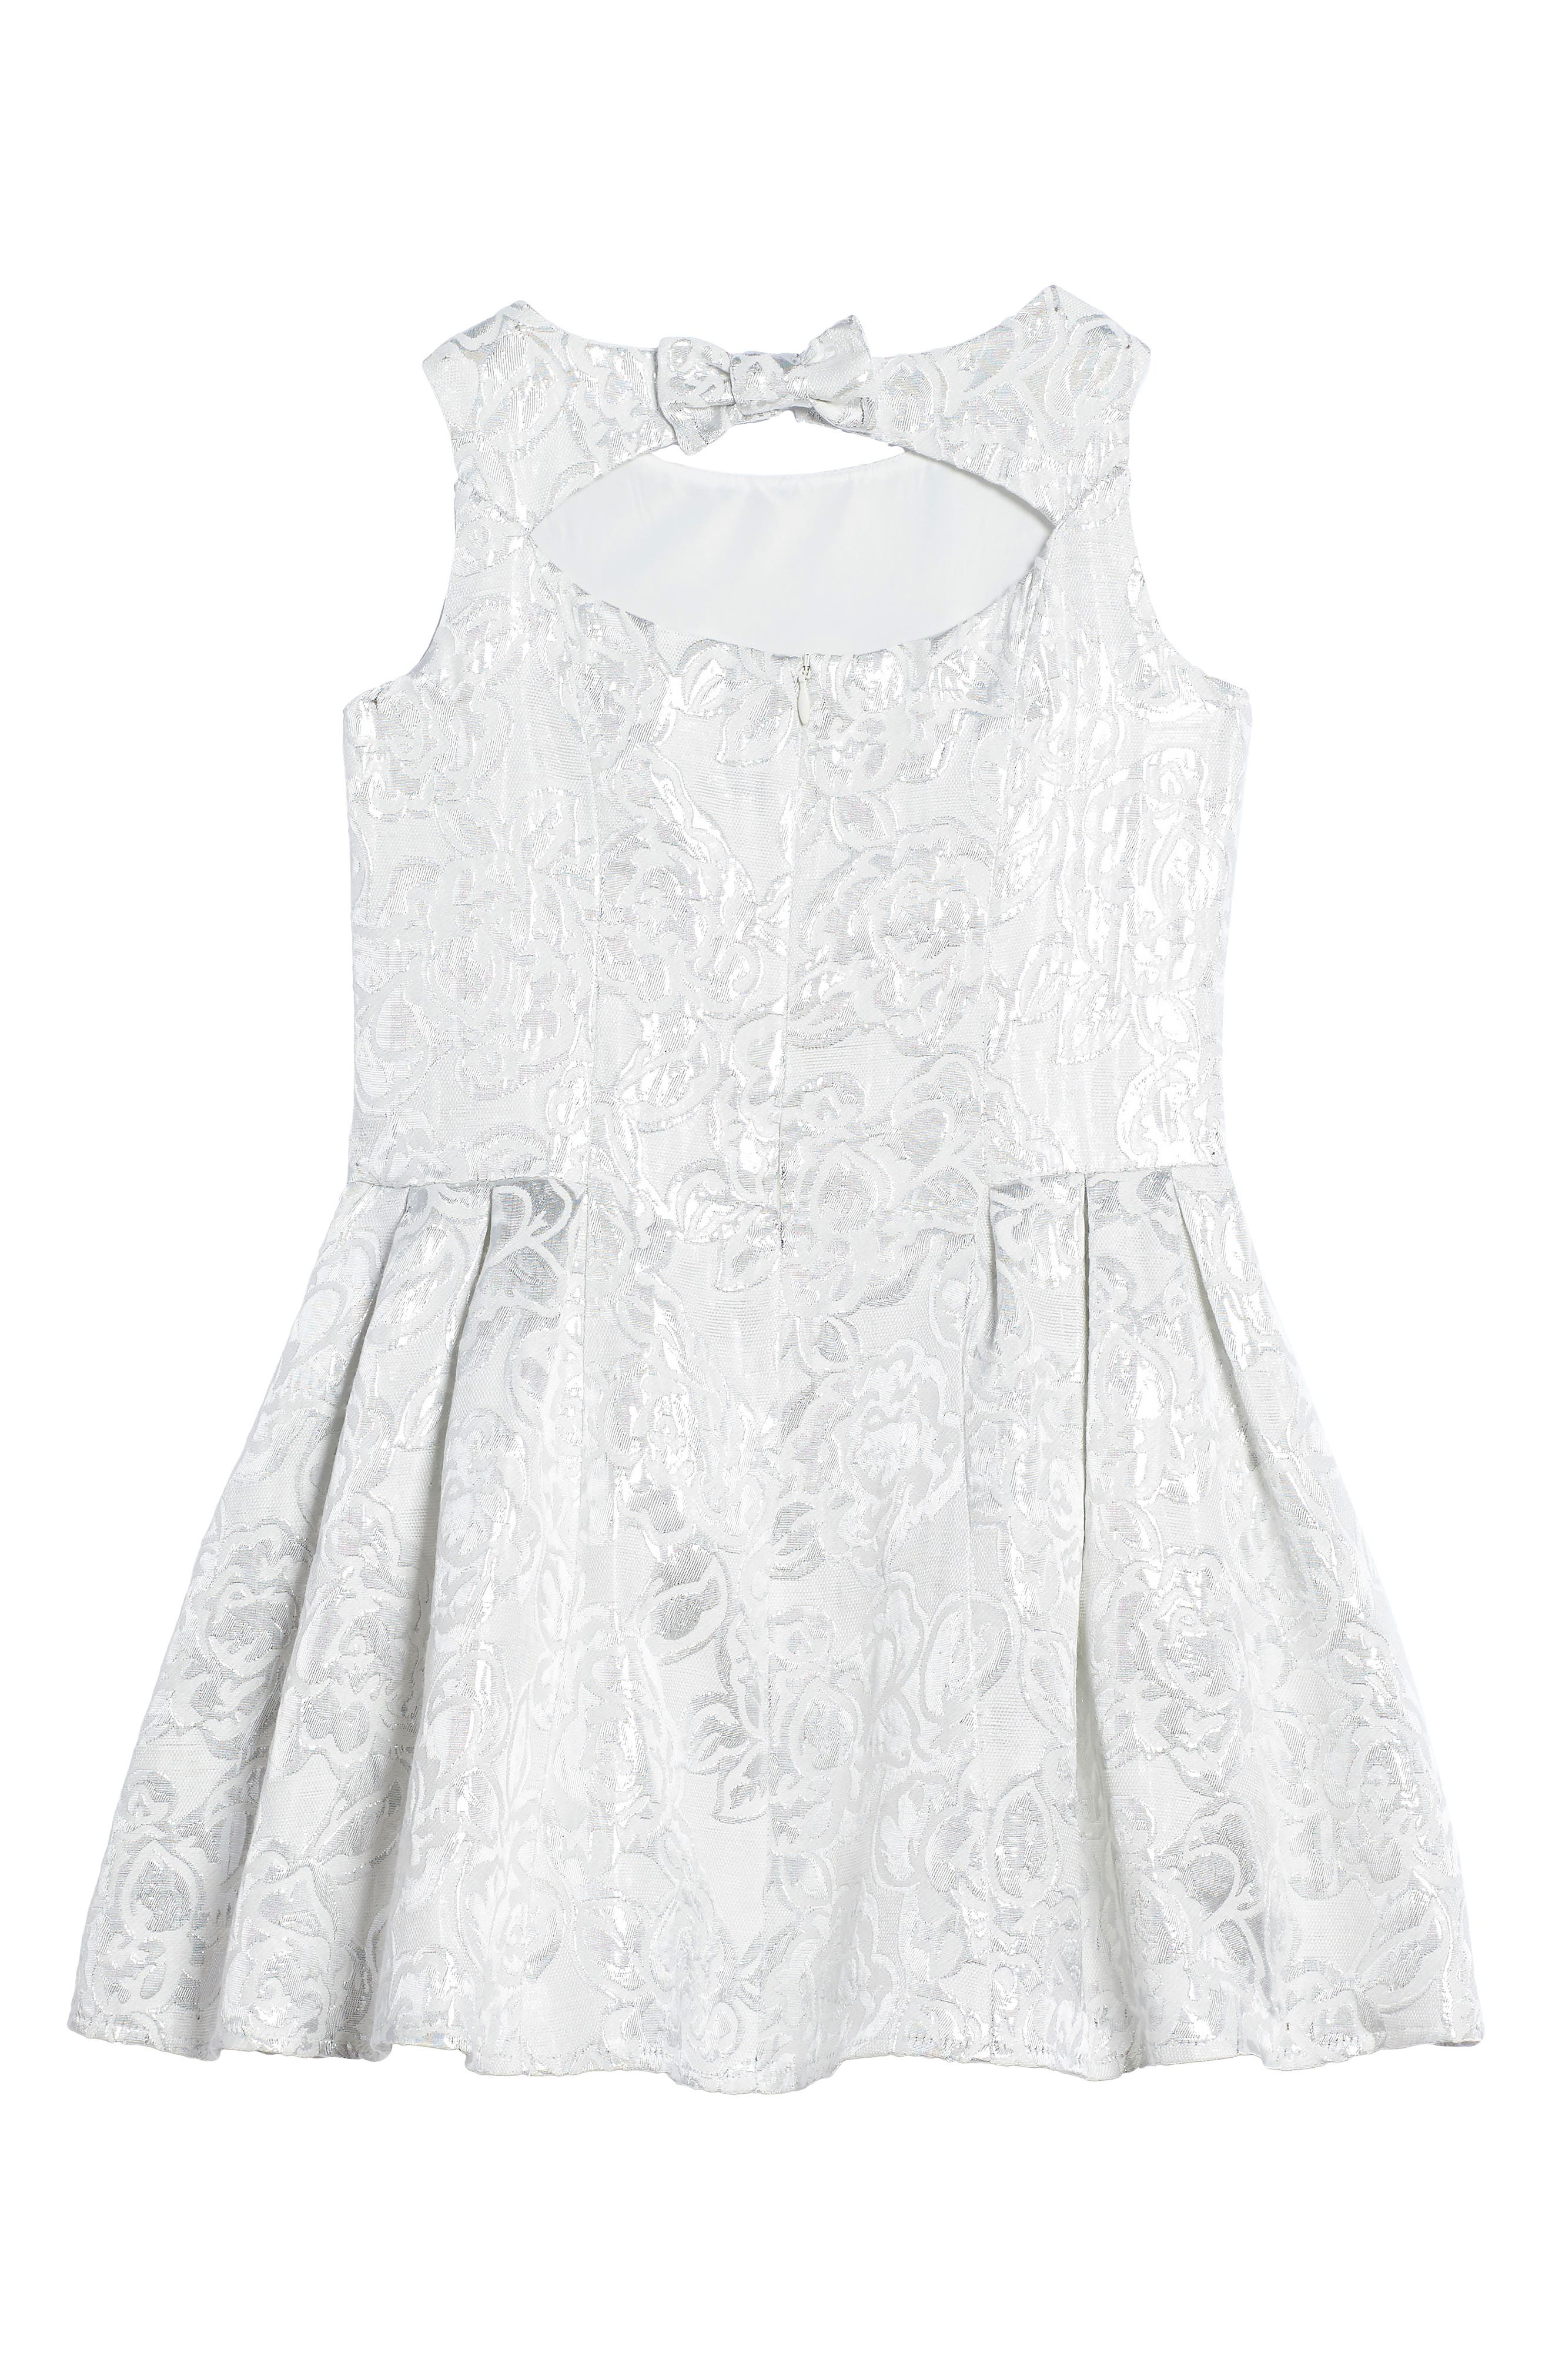 Princess Embroidered Dress,                             Alternate thumbnail 2, color,                             040